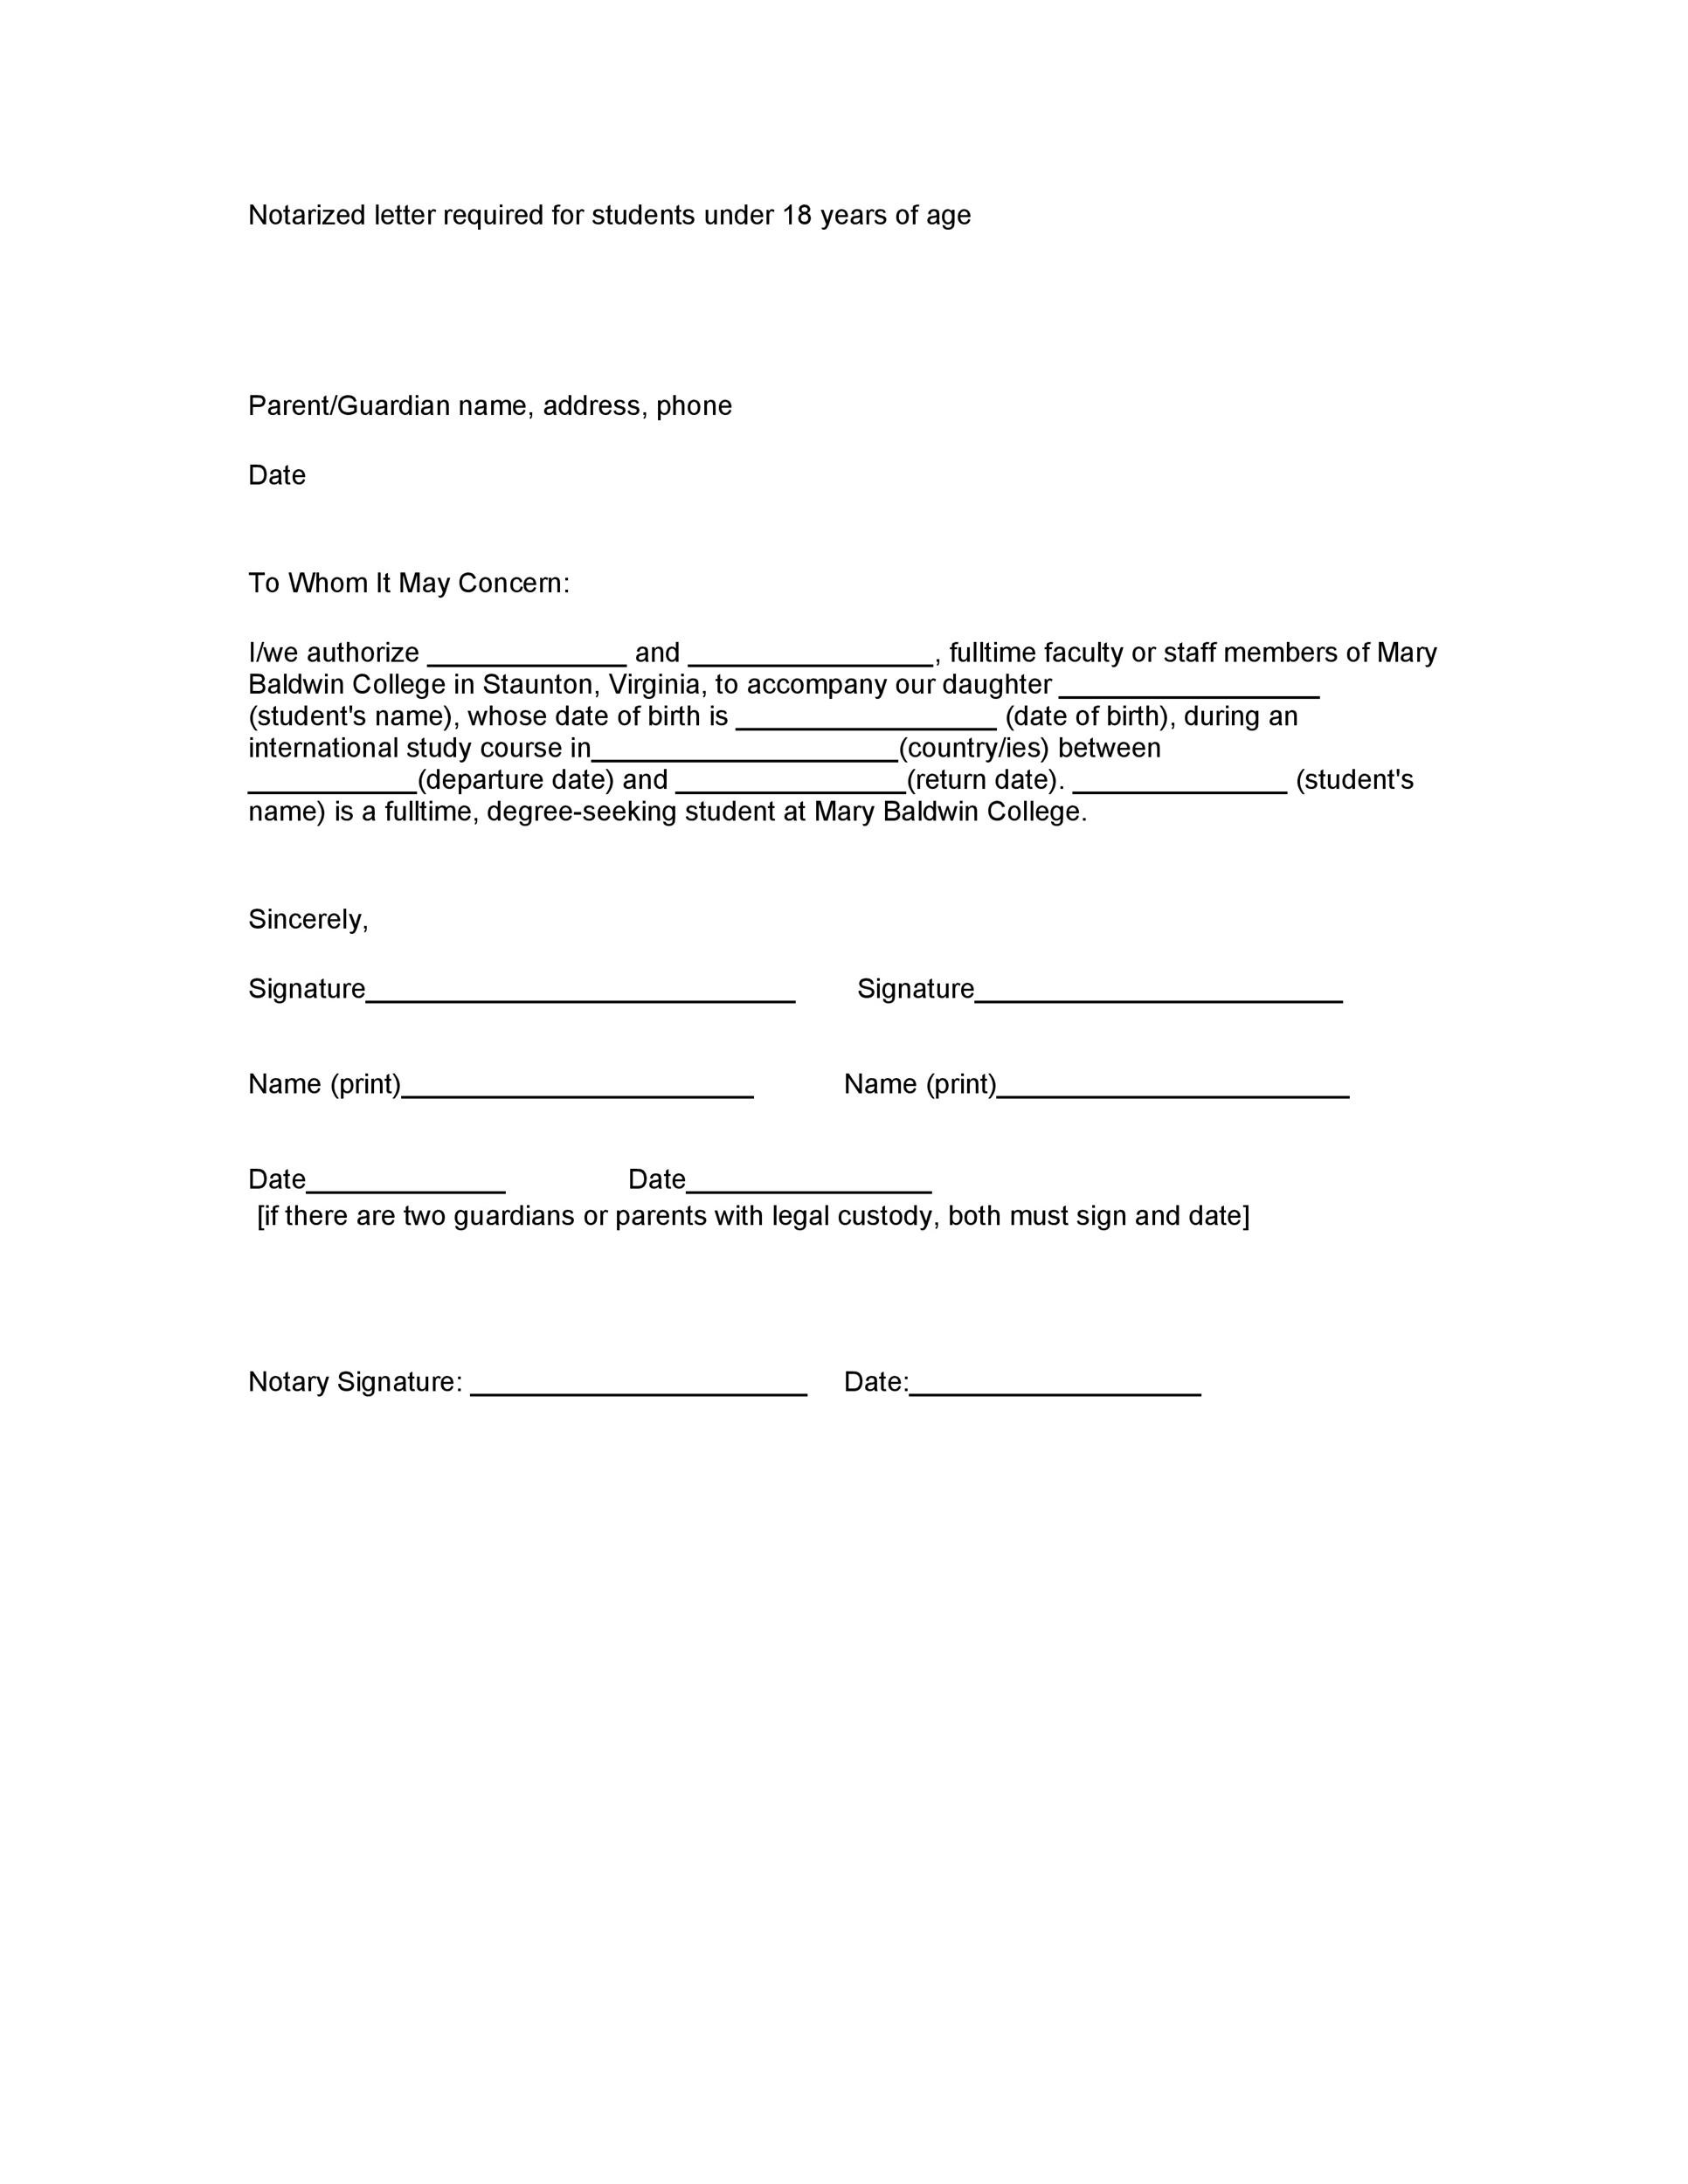 Free notary acknowledgement 29